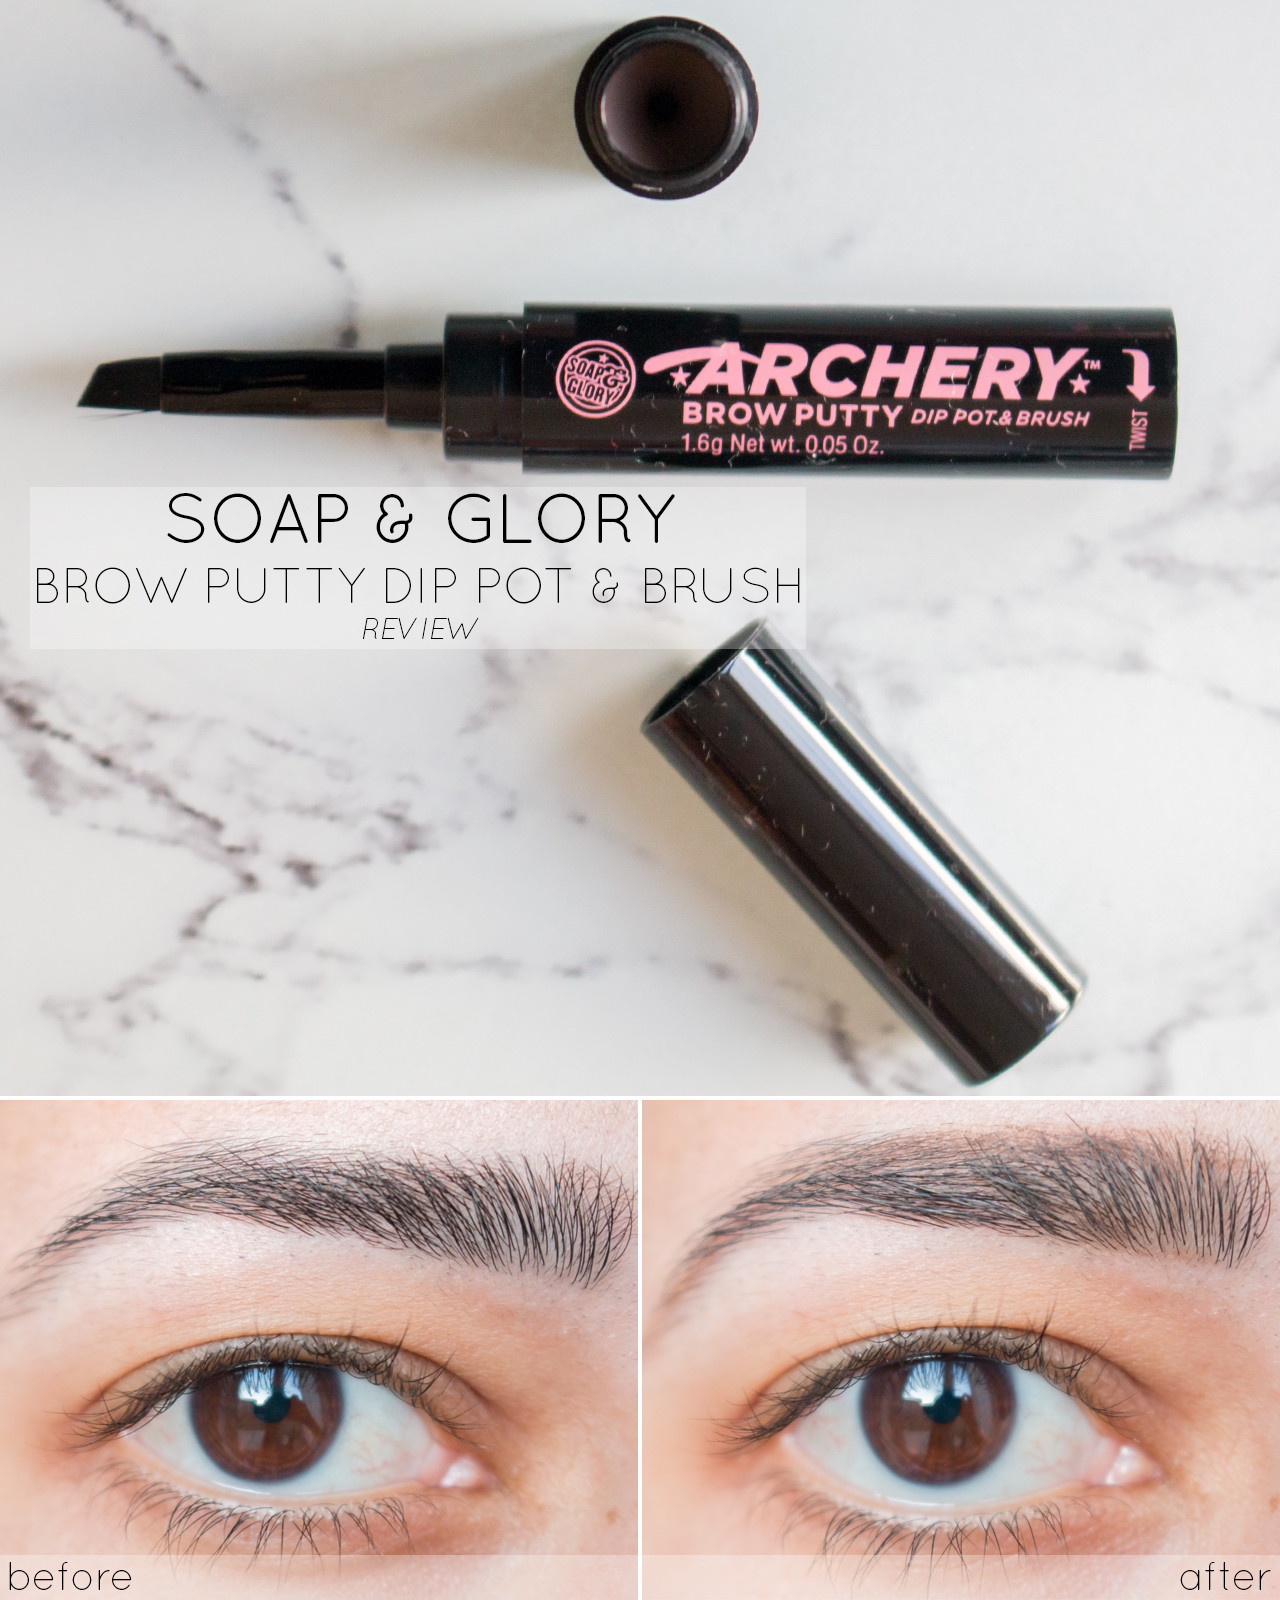 Soap and Glory Archery Brow Putty Dip Pot & Brush Review, Before and After, Swatch - www.ysislorenna.com